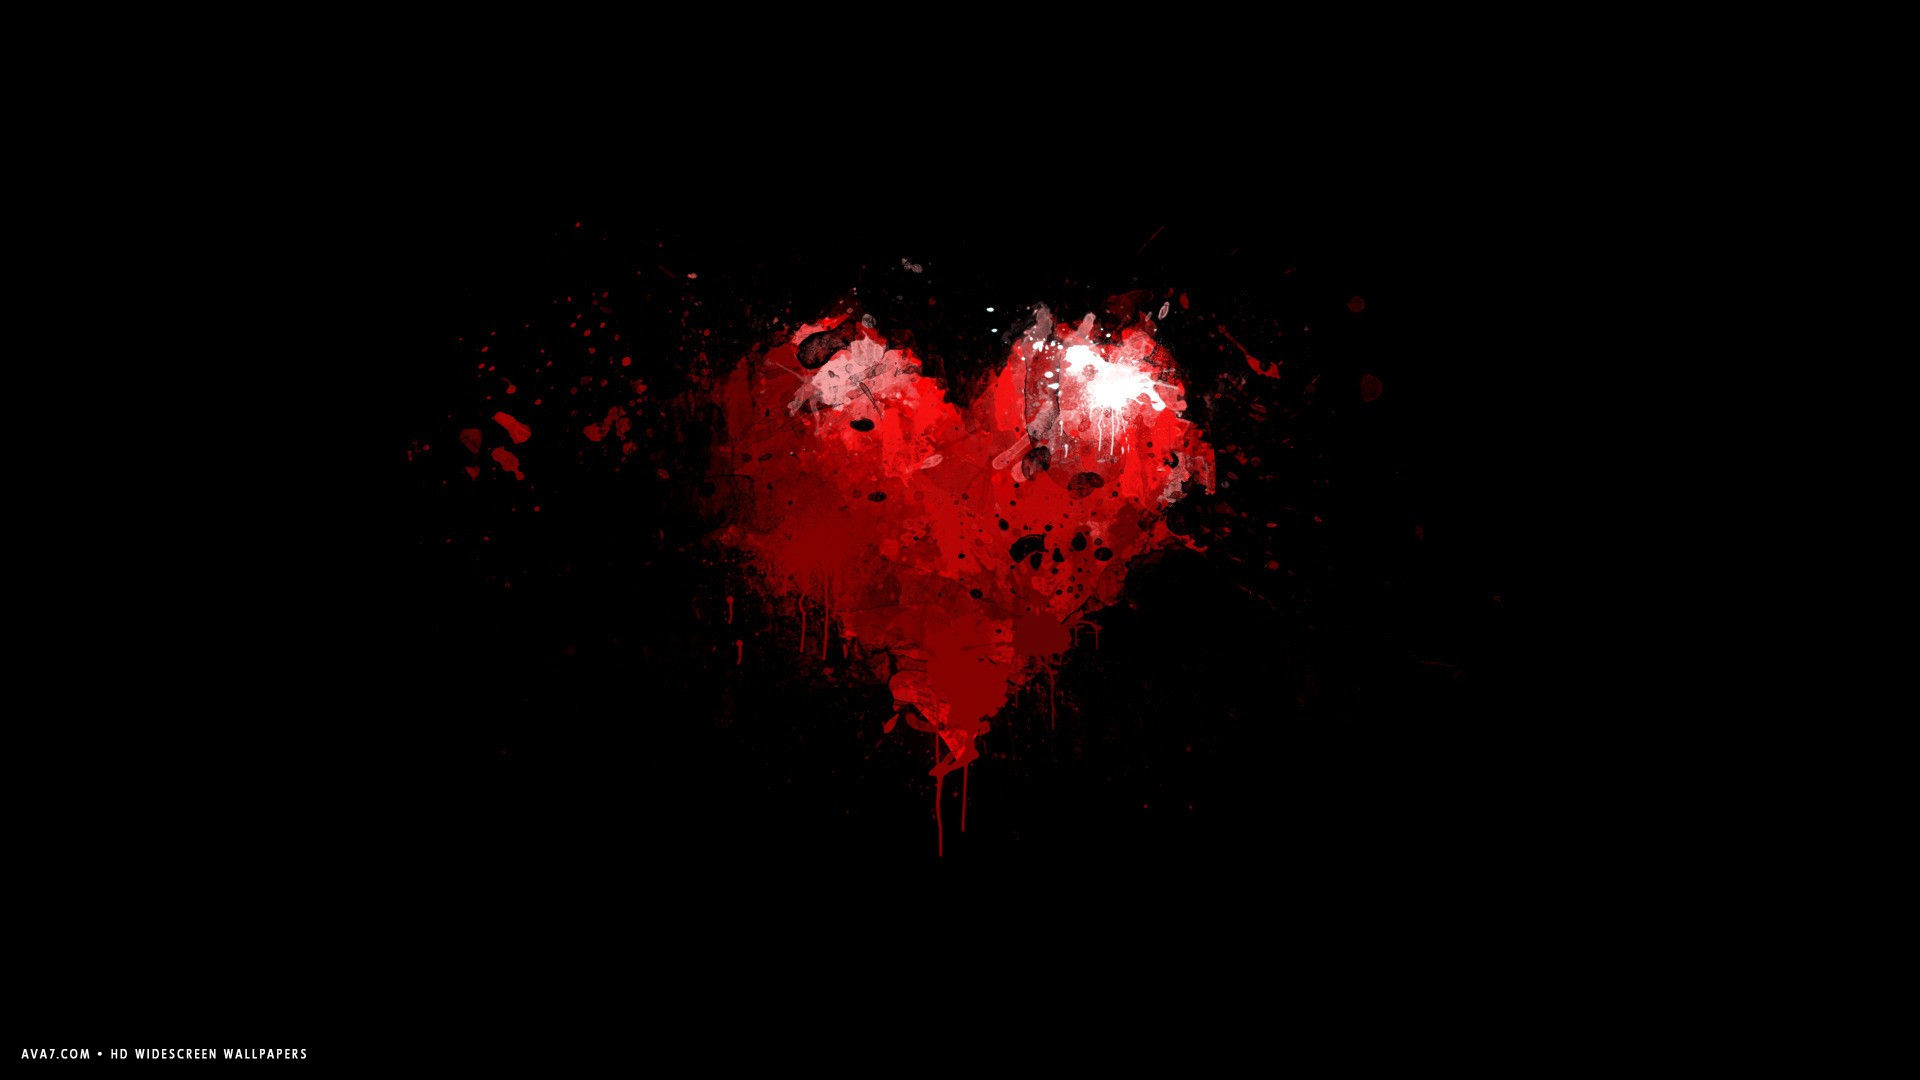 heart minimalistic red artistic symbol red grunge paint hd widescreen  wallpaper